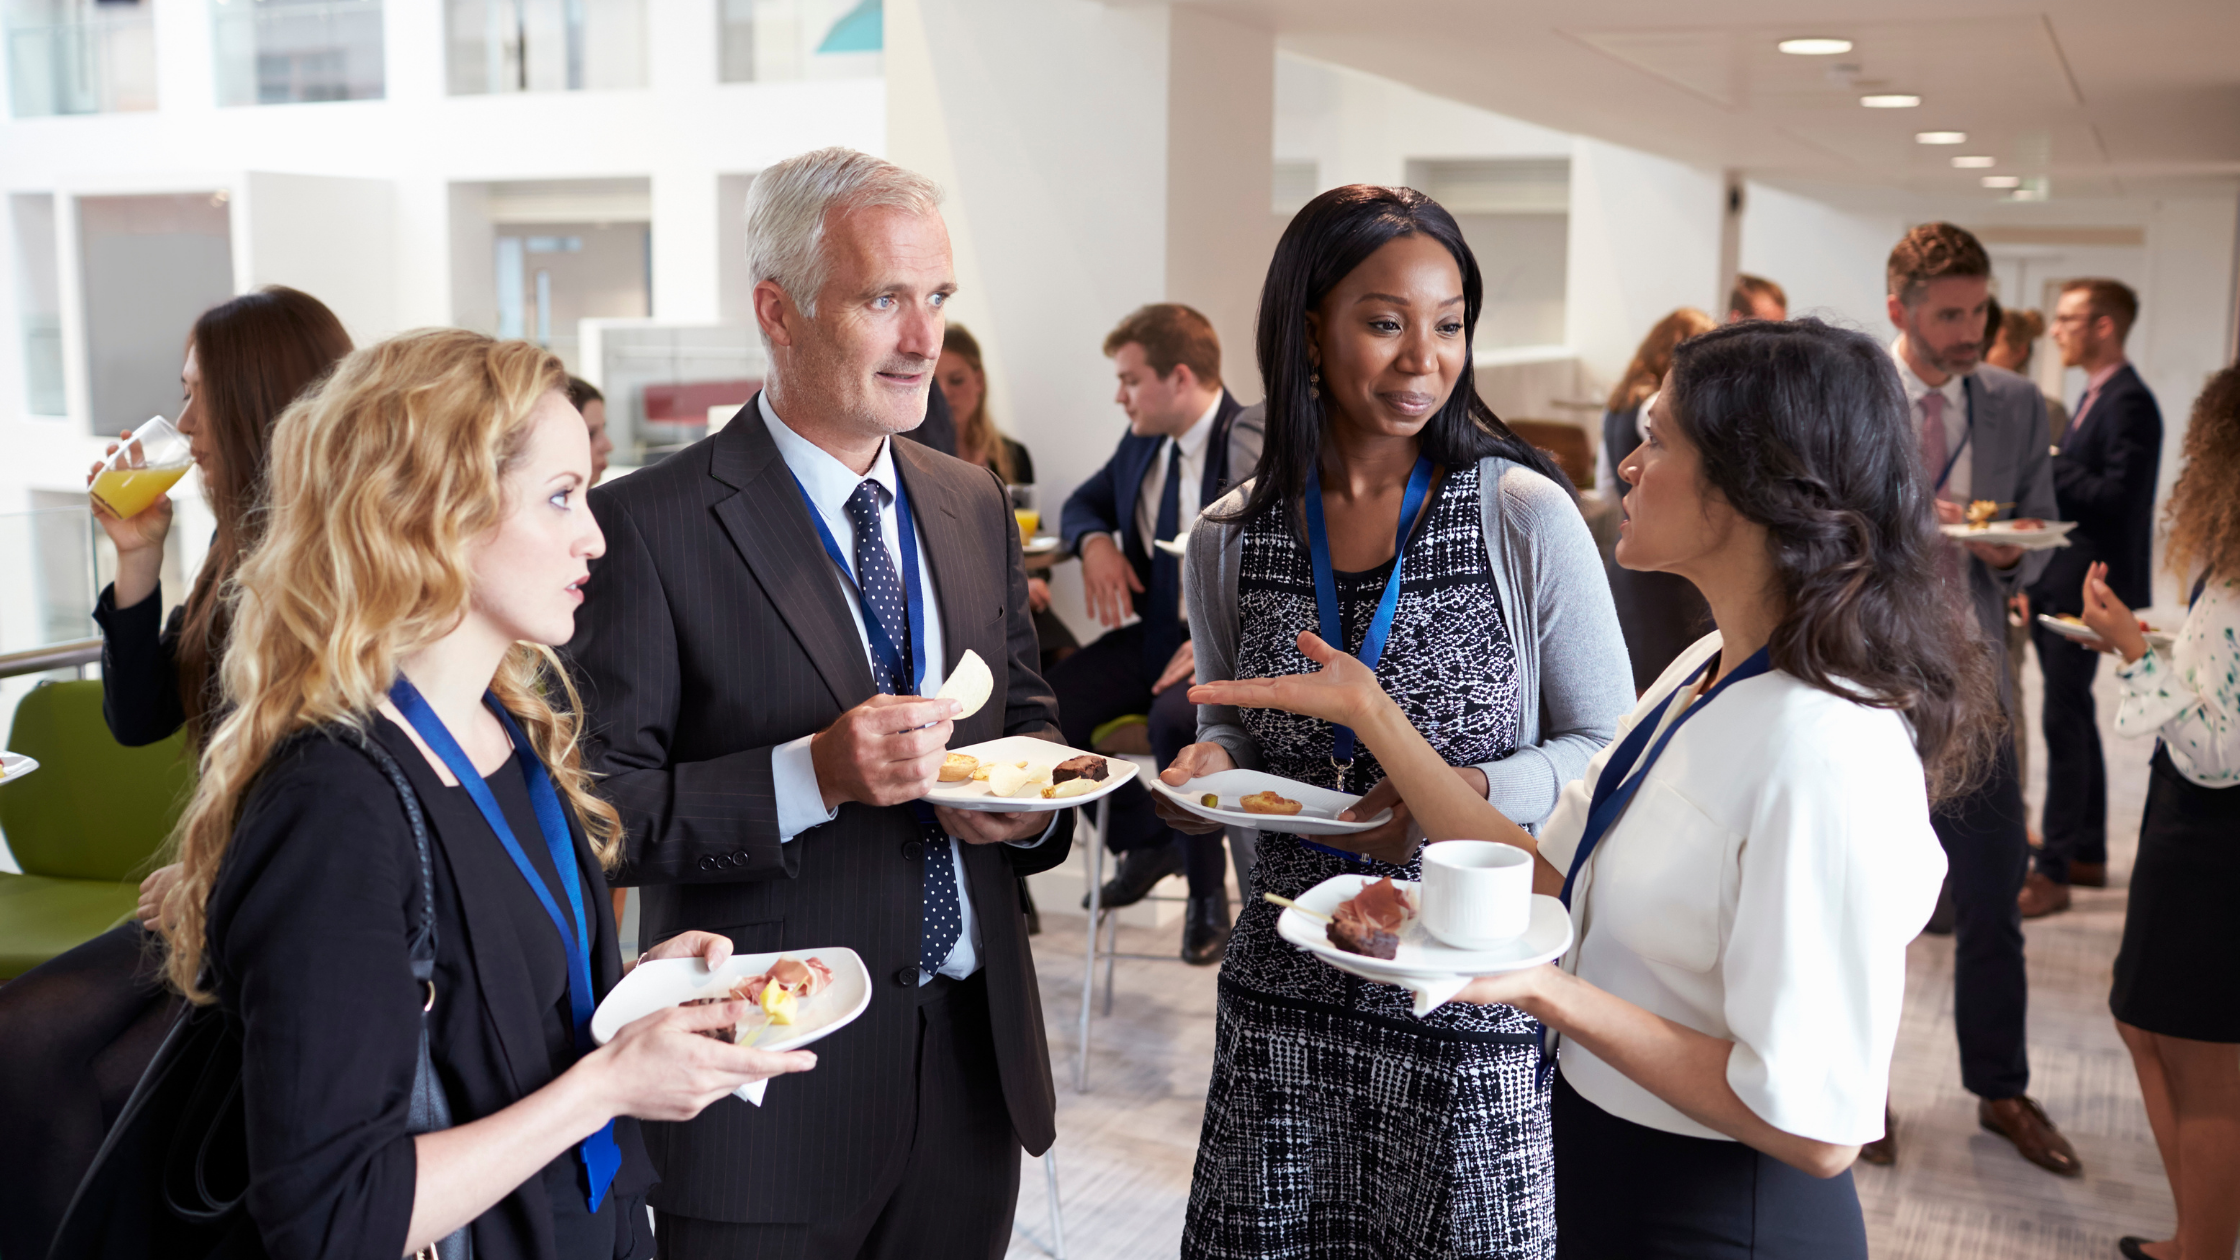 Networking tips for small business owners